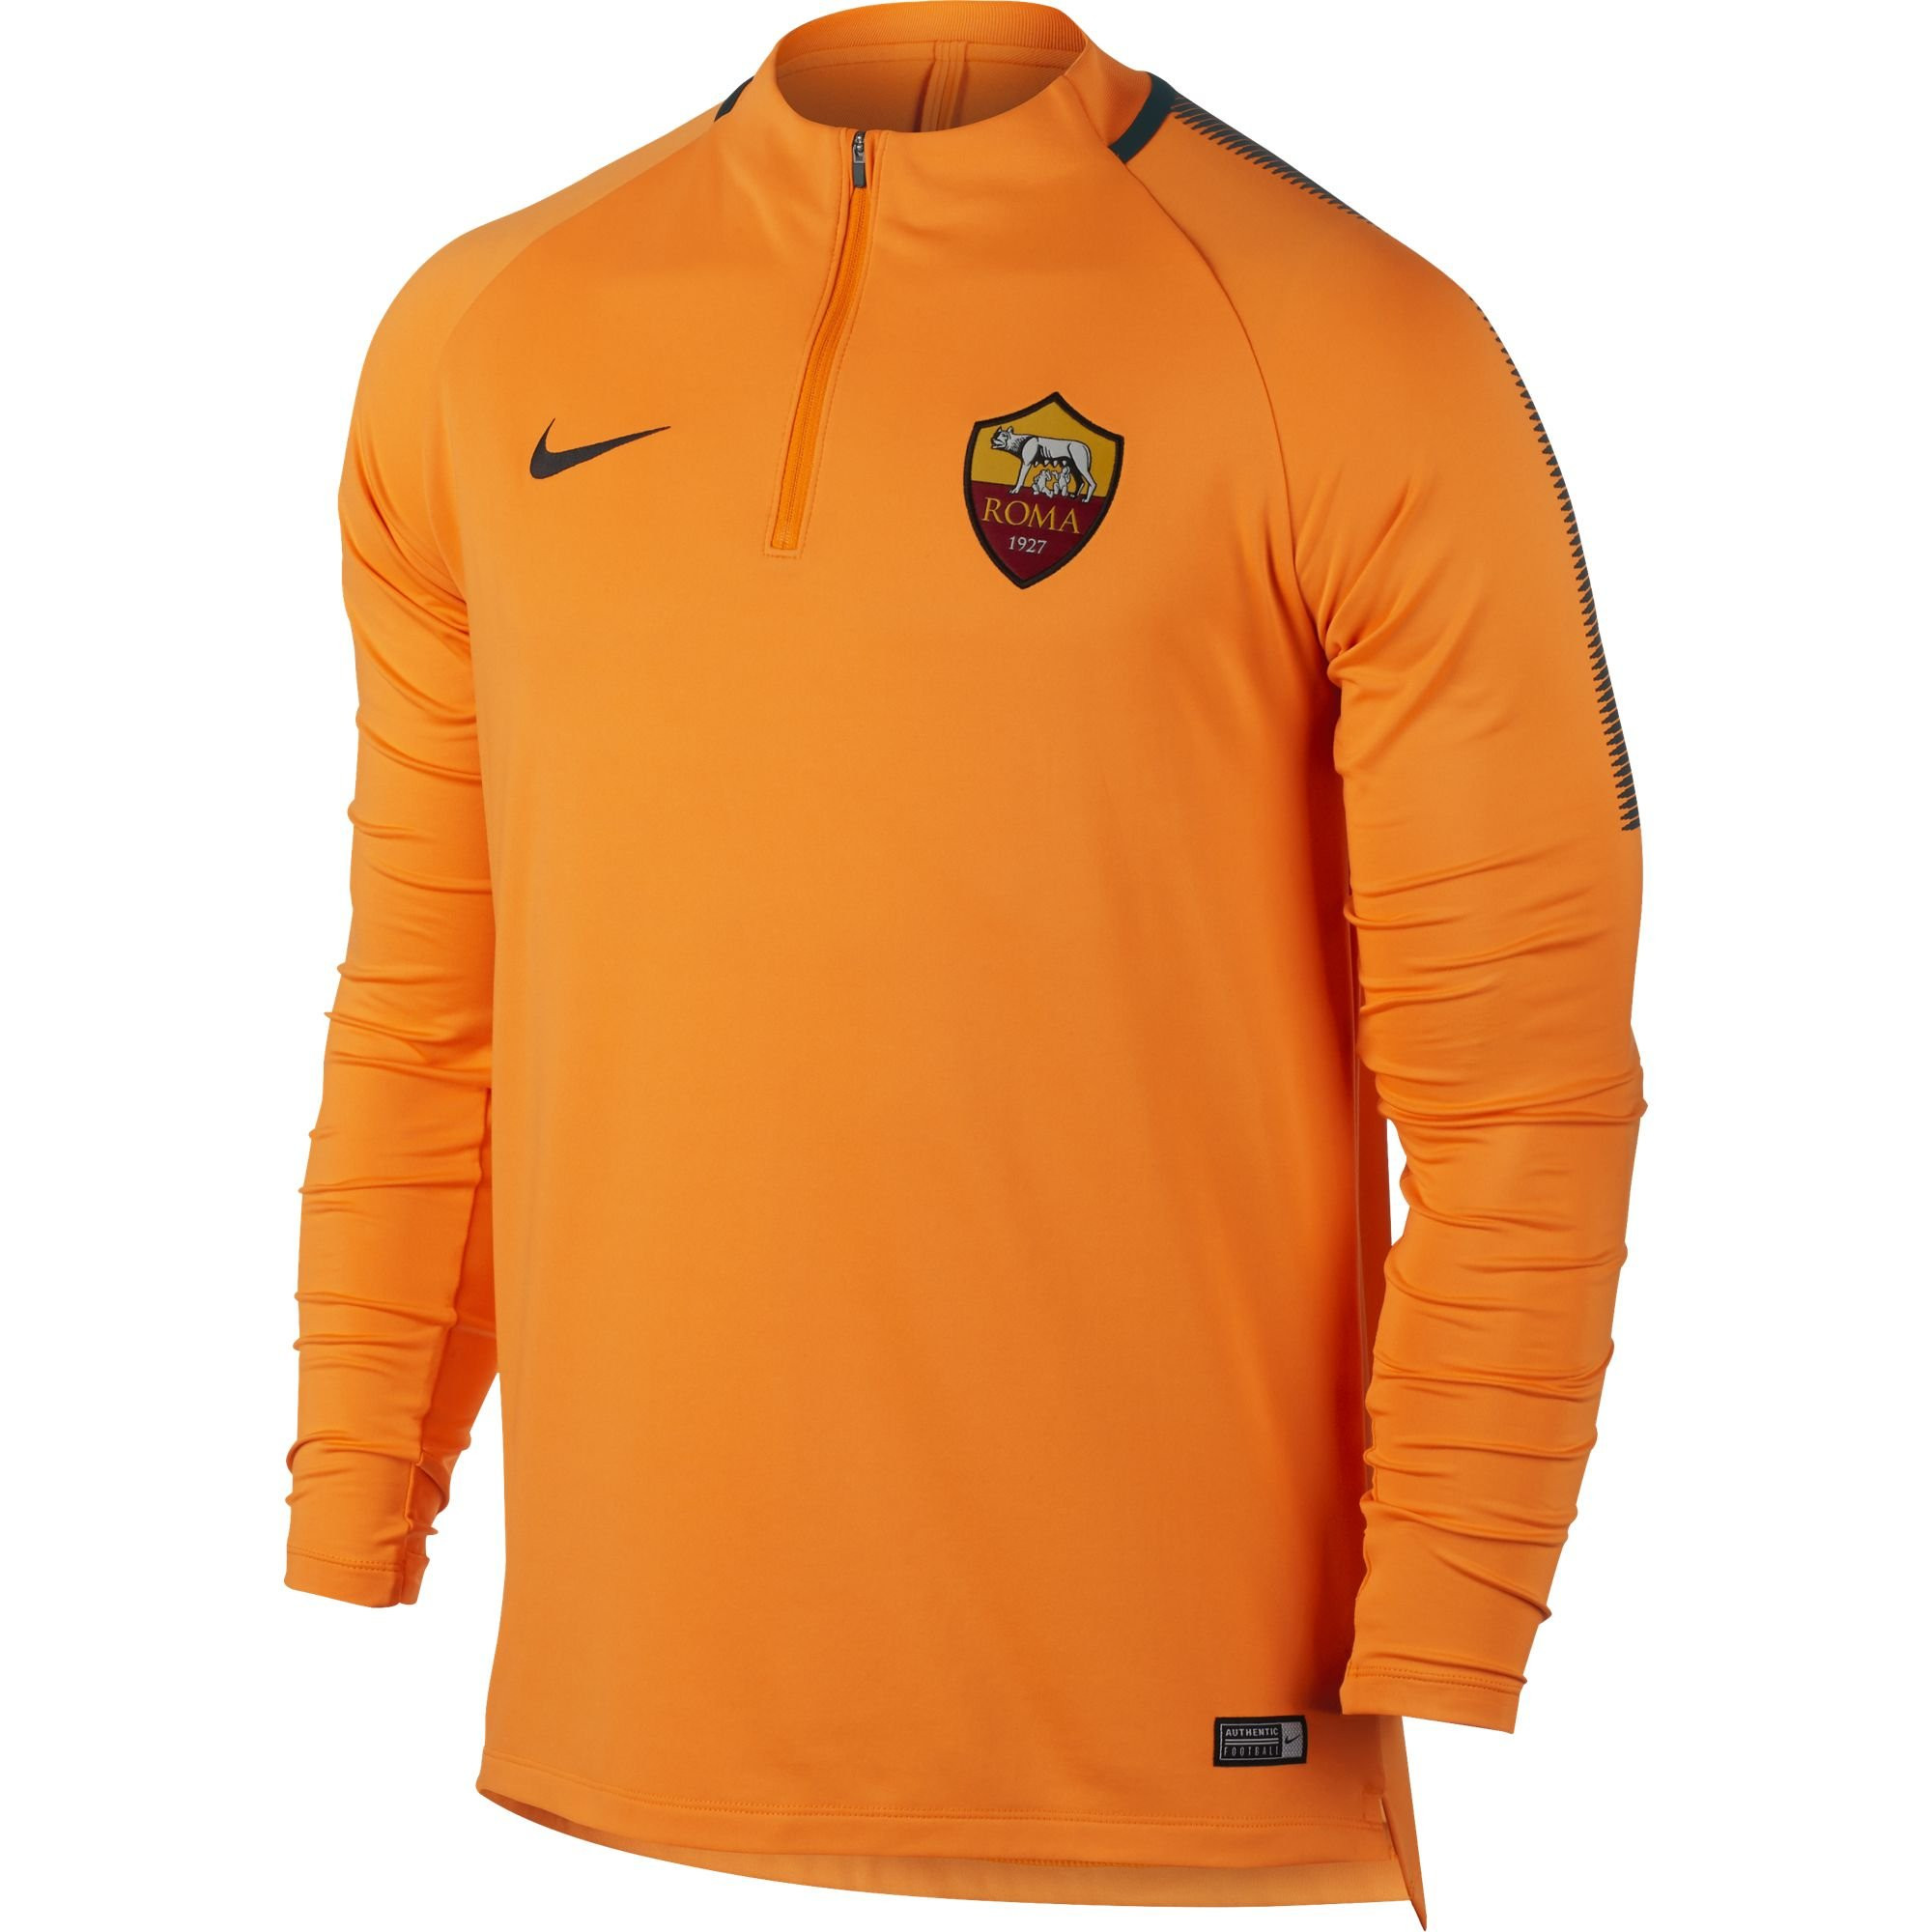 Sweat Trg Orange Top Rayon Entrainement 20172018 Nike Roma As xS7U6qwc1H